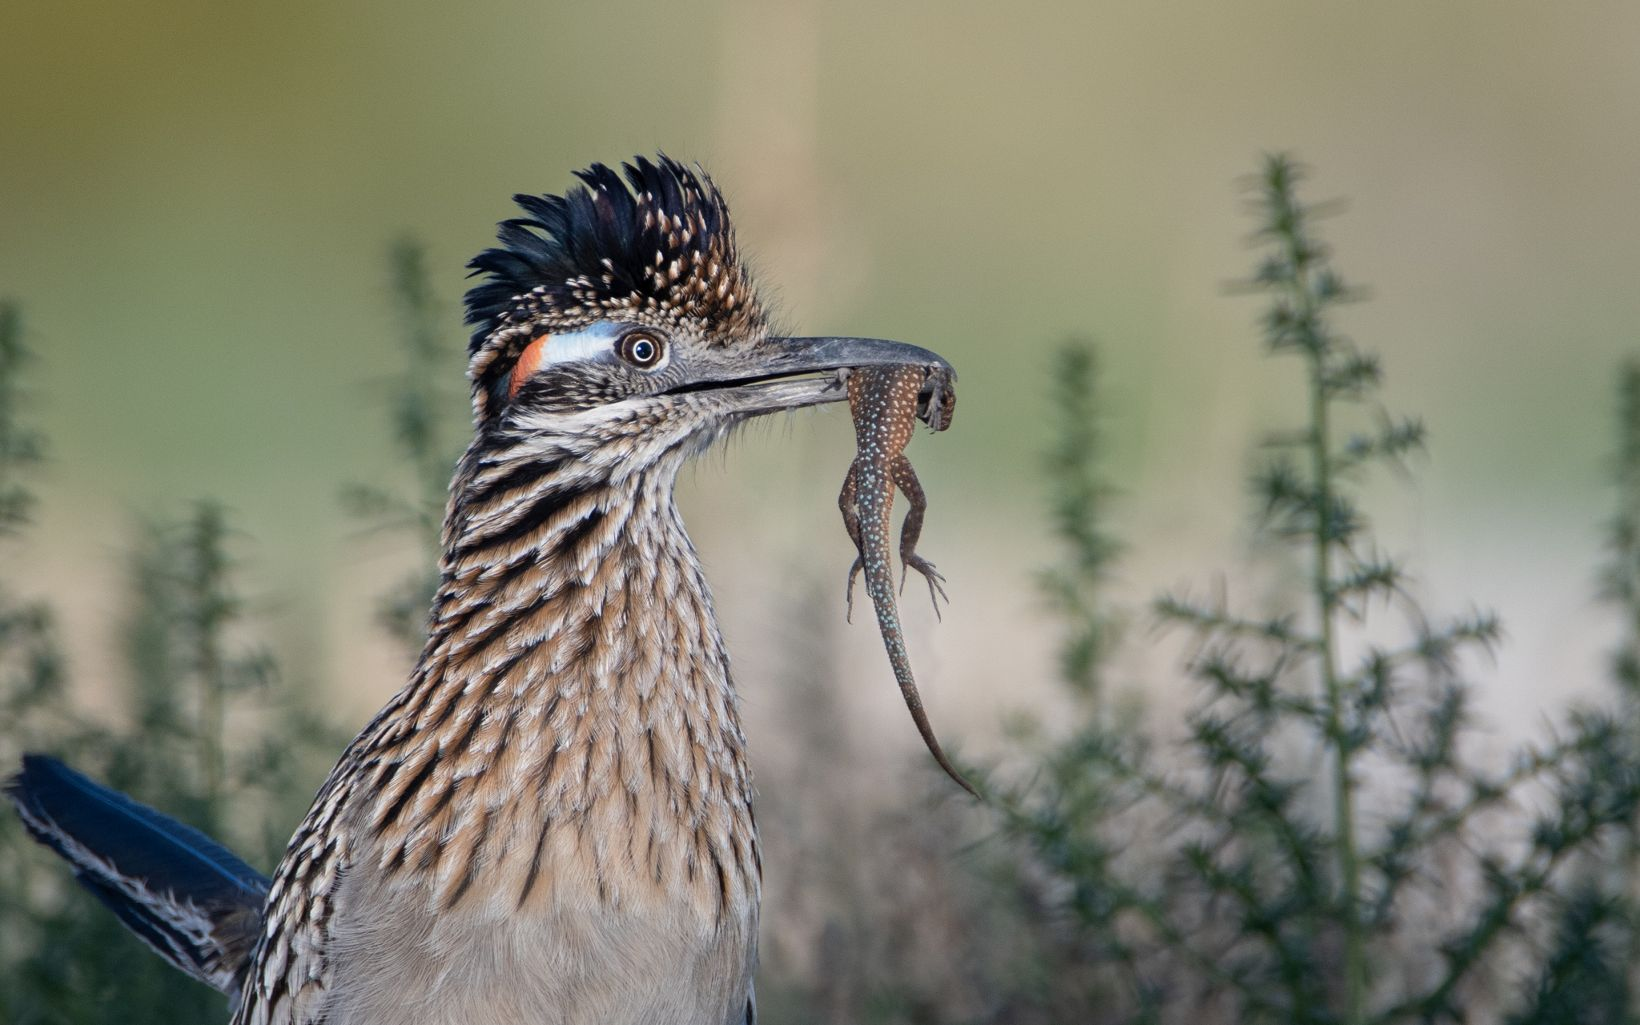 The neck and head of a bird with brown and tan feathers and a crest on its head, holding a small lizard in its beak, with green plants growing up on either side in the background.